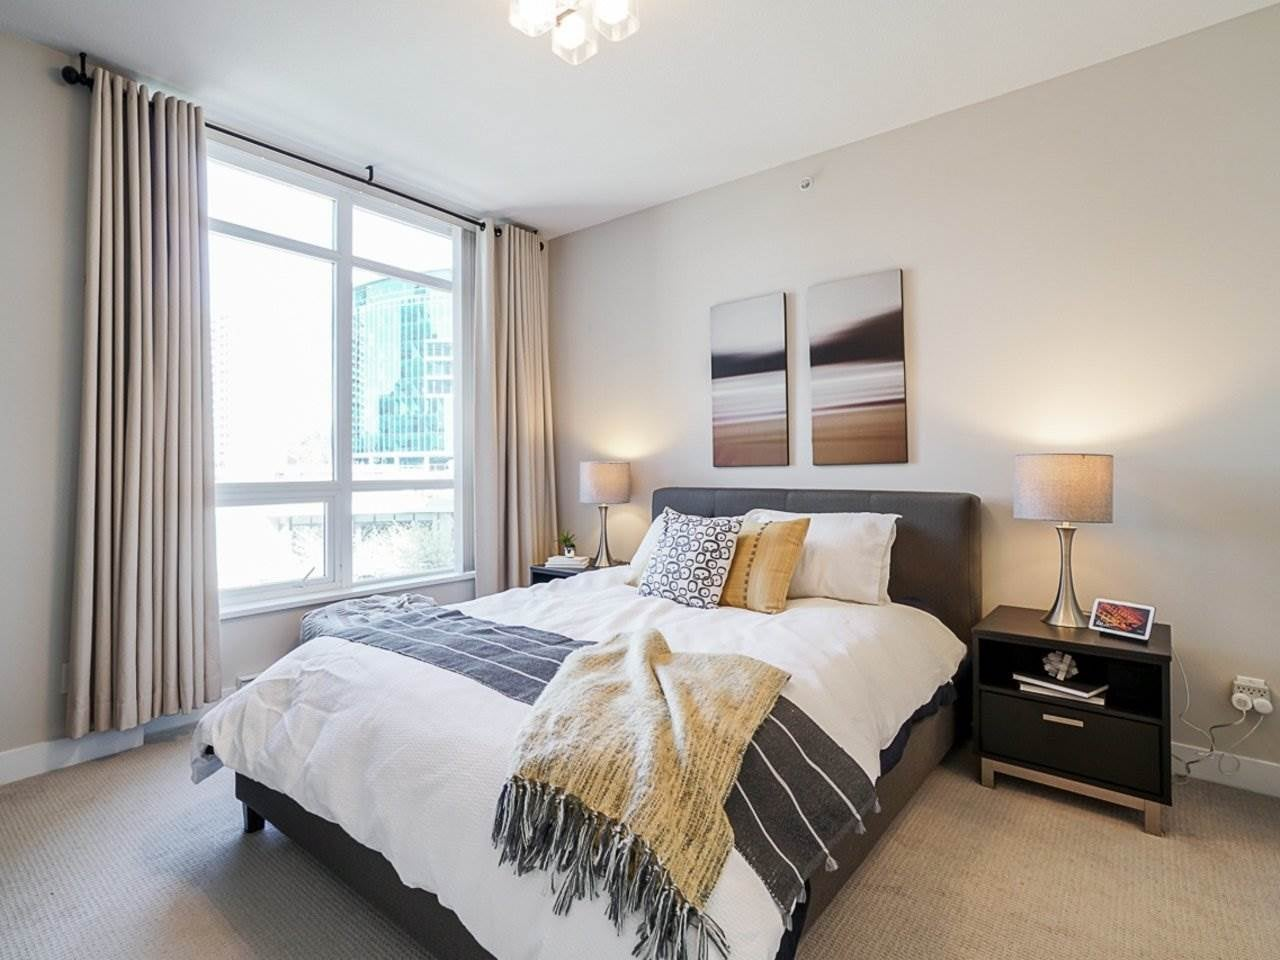 507 2077 ROSSER AVENUE - Brentwood Park Apartment/Condo for sale, 2 Bedrooms (R2568911) - #1